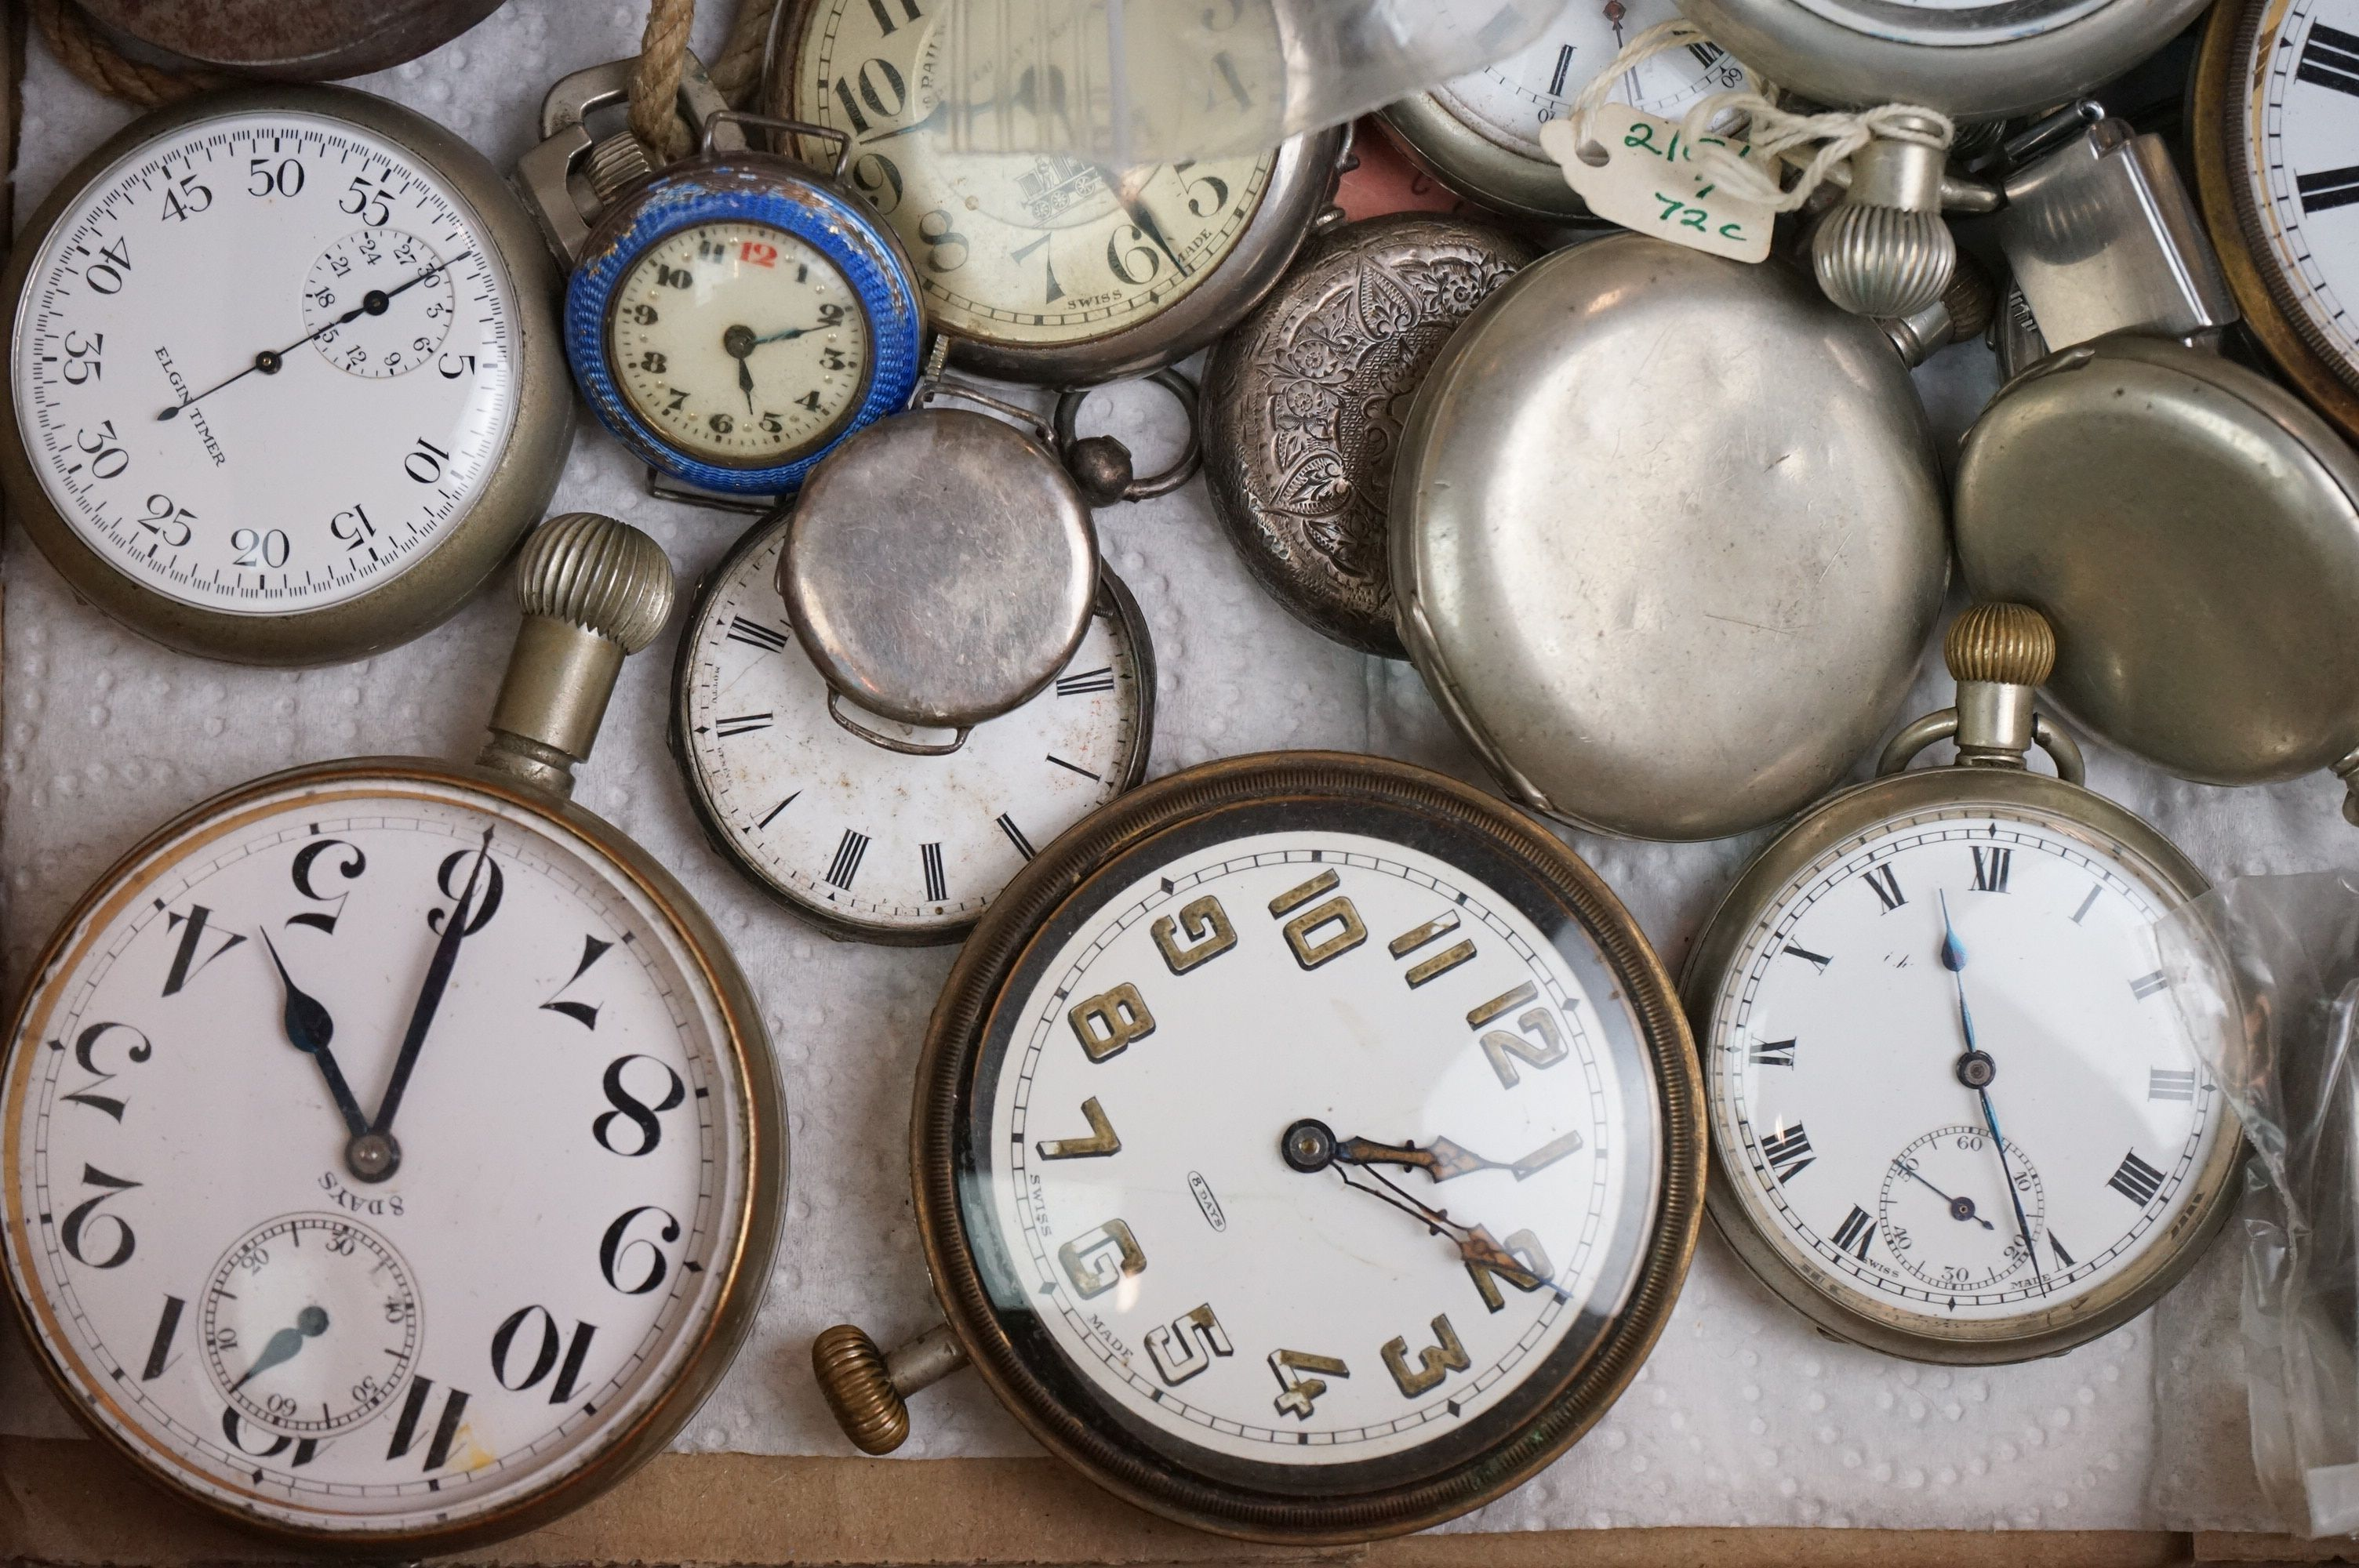 Large collection of white metal, chrome plated and stainless steel pocket watches to include Tissot, - Image 5 of 5